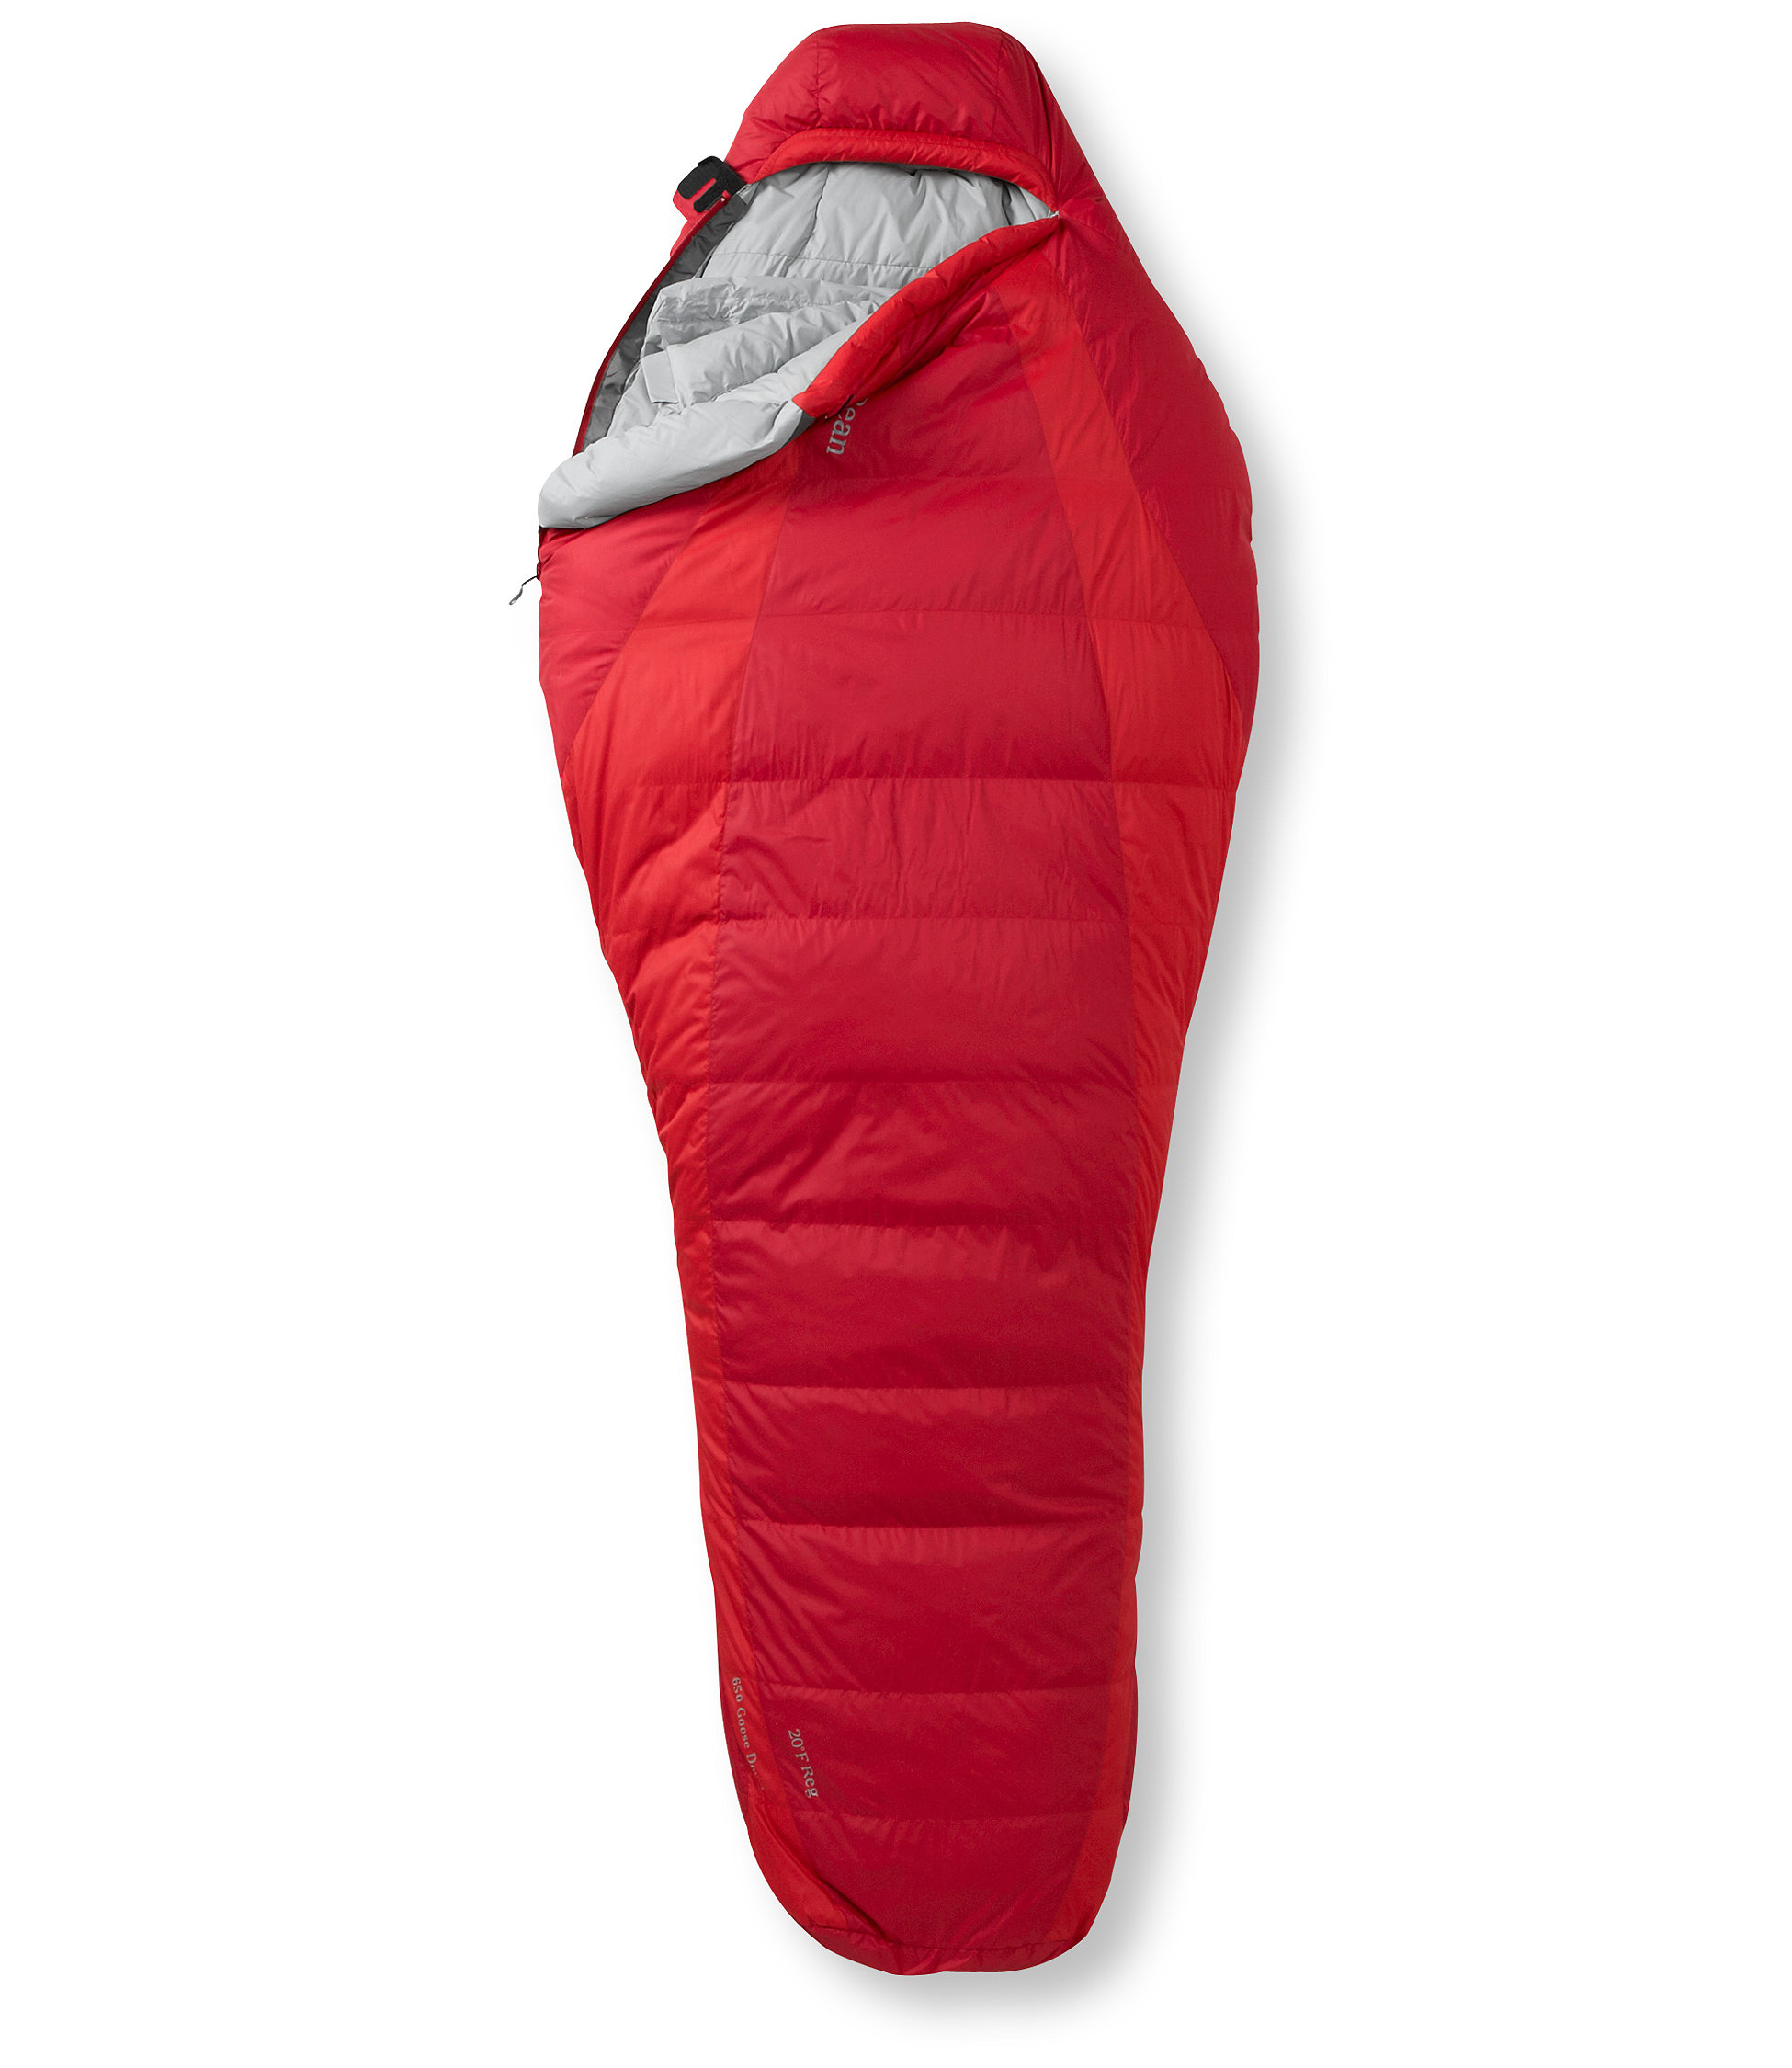 photo: L.L.Bean Goose Down Sleeping Bag, Mummy -20° cold weather down sleeping bag